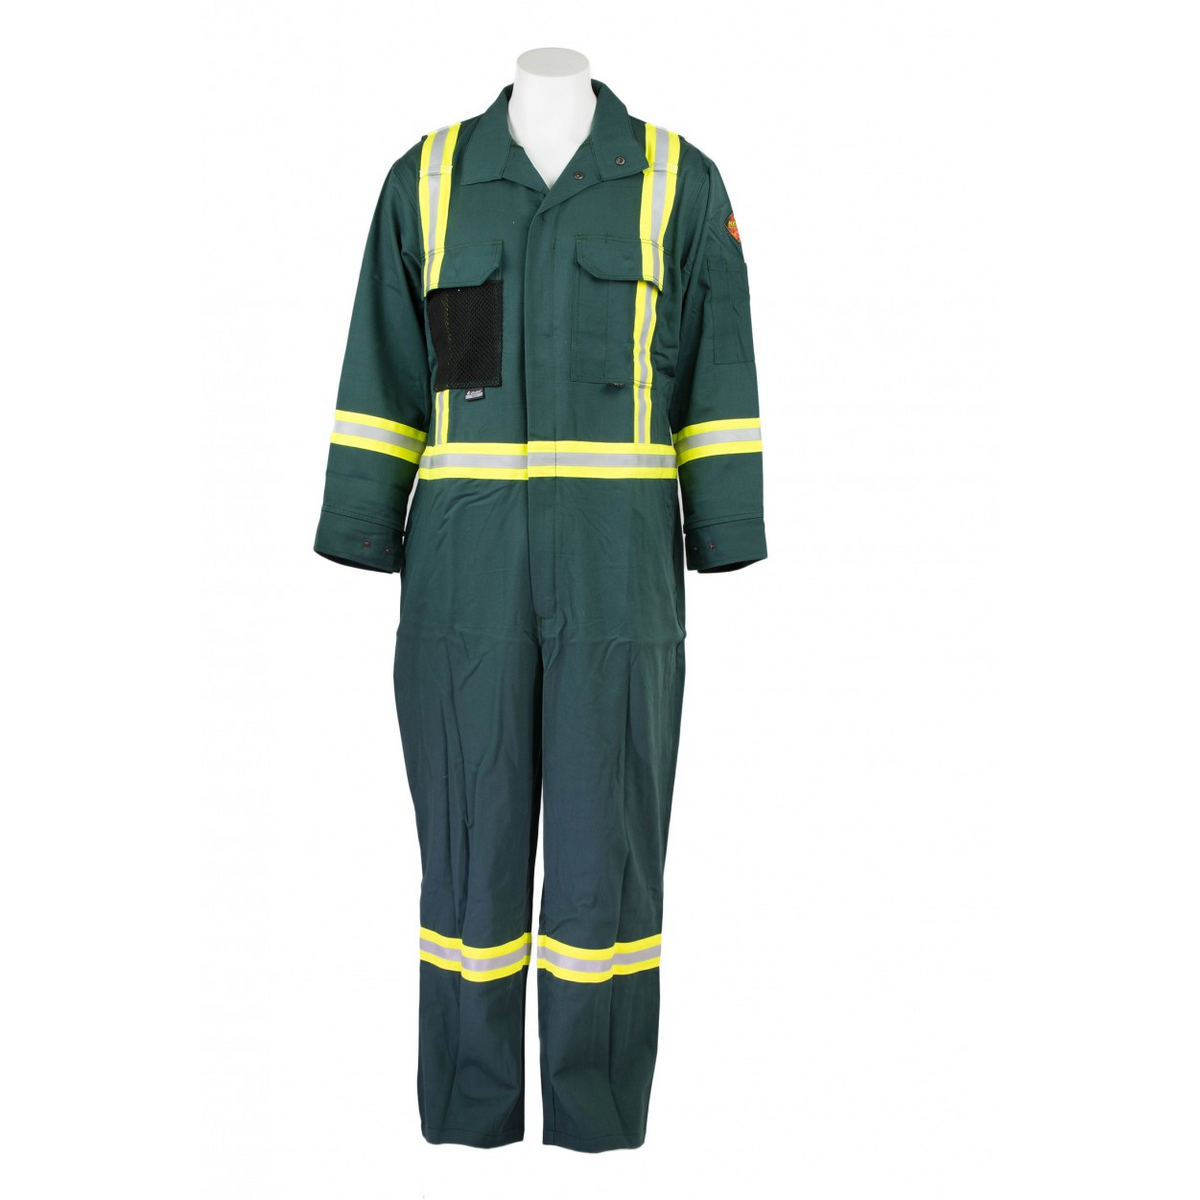 KELTEK 377S 7oz Premium Flame Resistant Coverall | Green | Sizes 34-64 (HRC 2) Flame Resistant Work Wear - Cleanflow